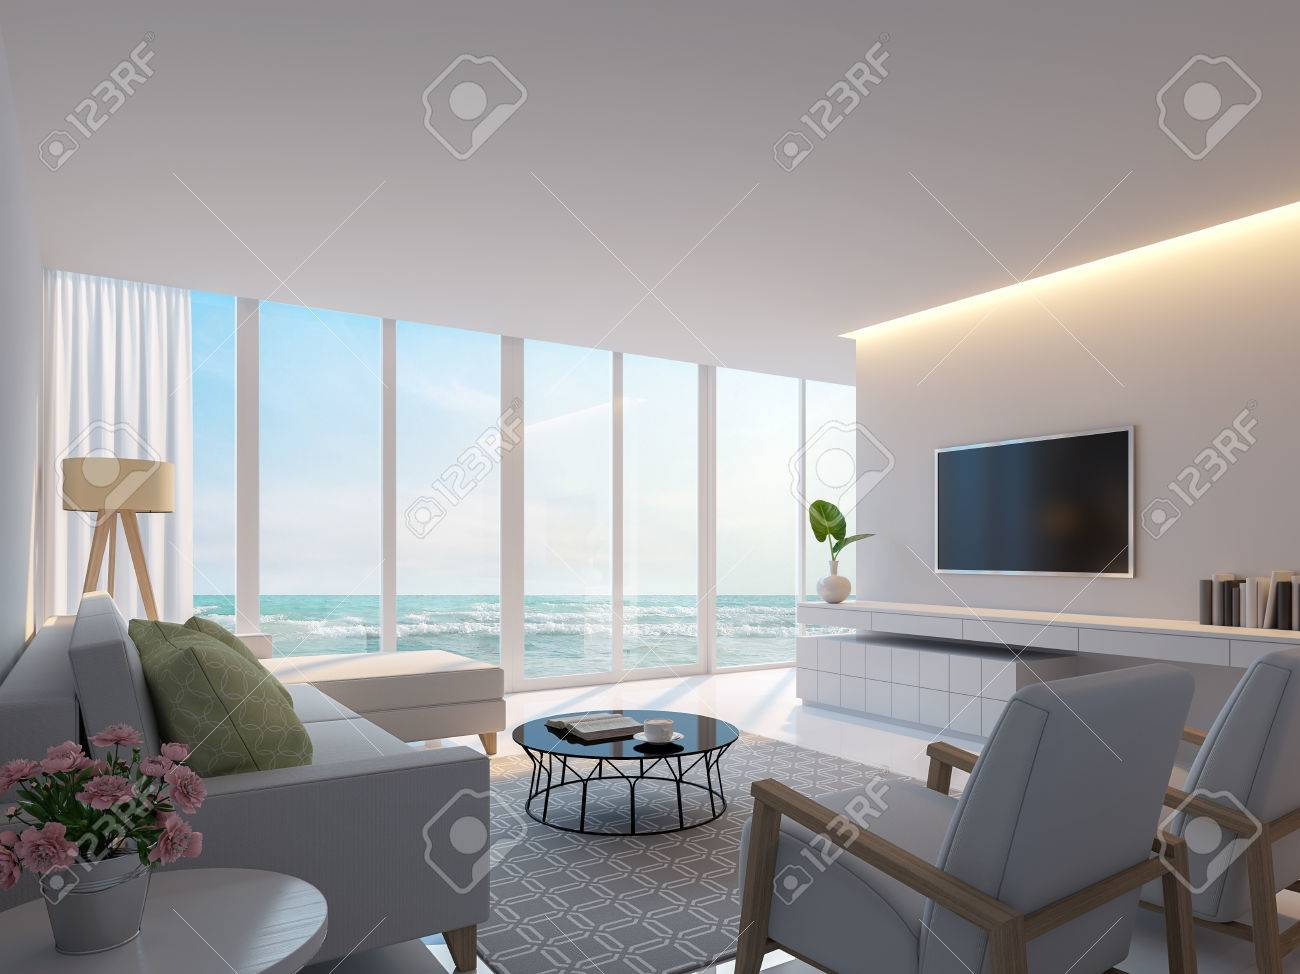 Modern White Living Room With Sea View 3d Rendering Image Decorate Stock Photo Picture And Royalty Free Image Image 72758541